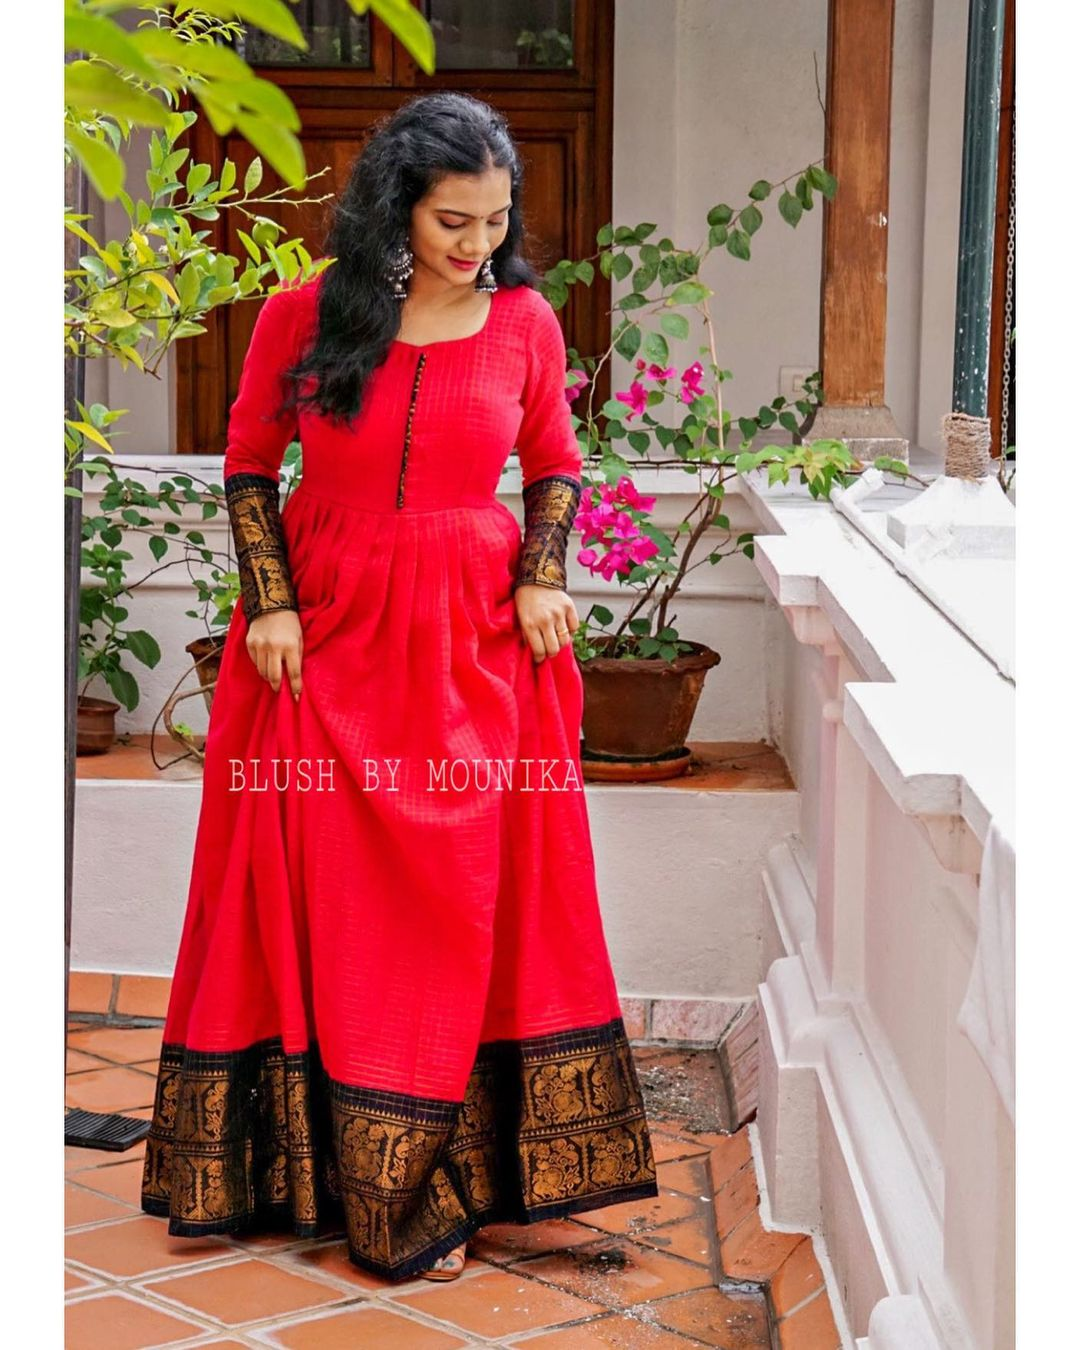 Loom Love. Stunning red color hand loom pattu long frock. 2021-02-23